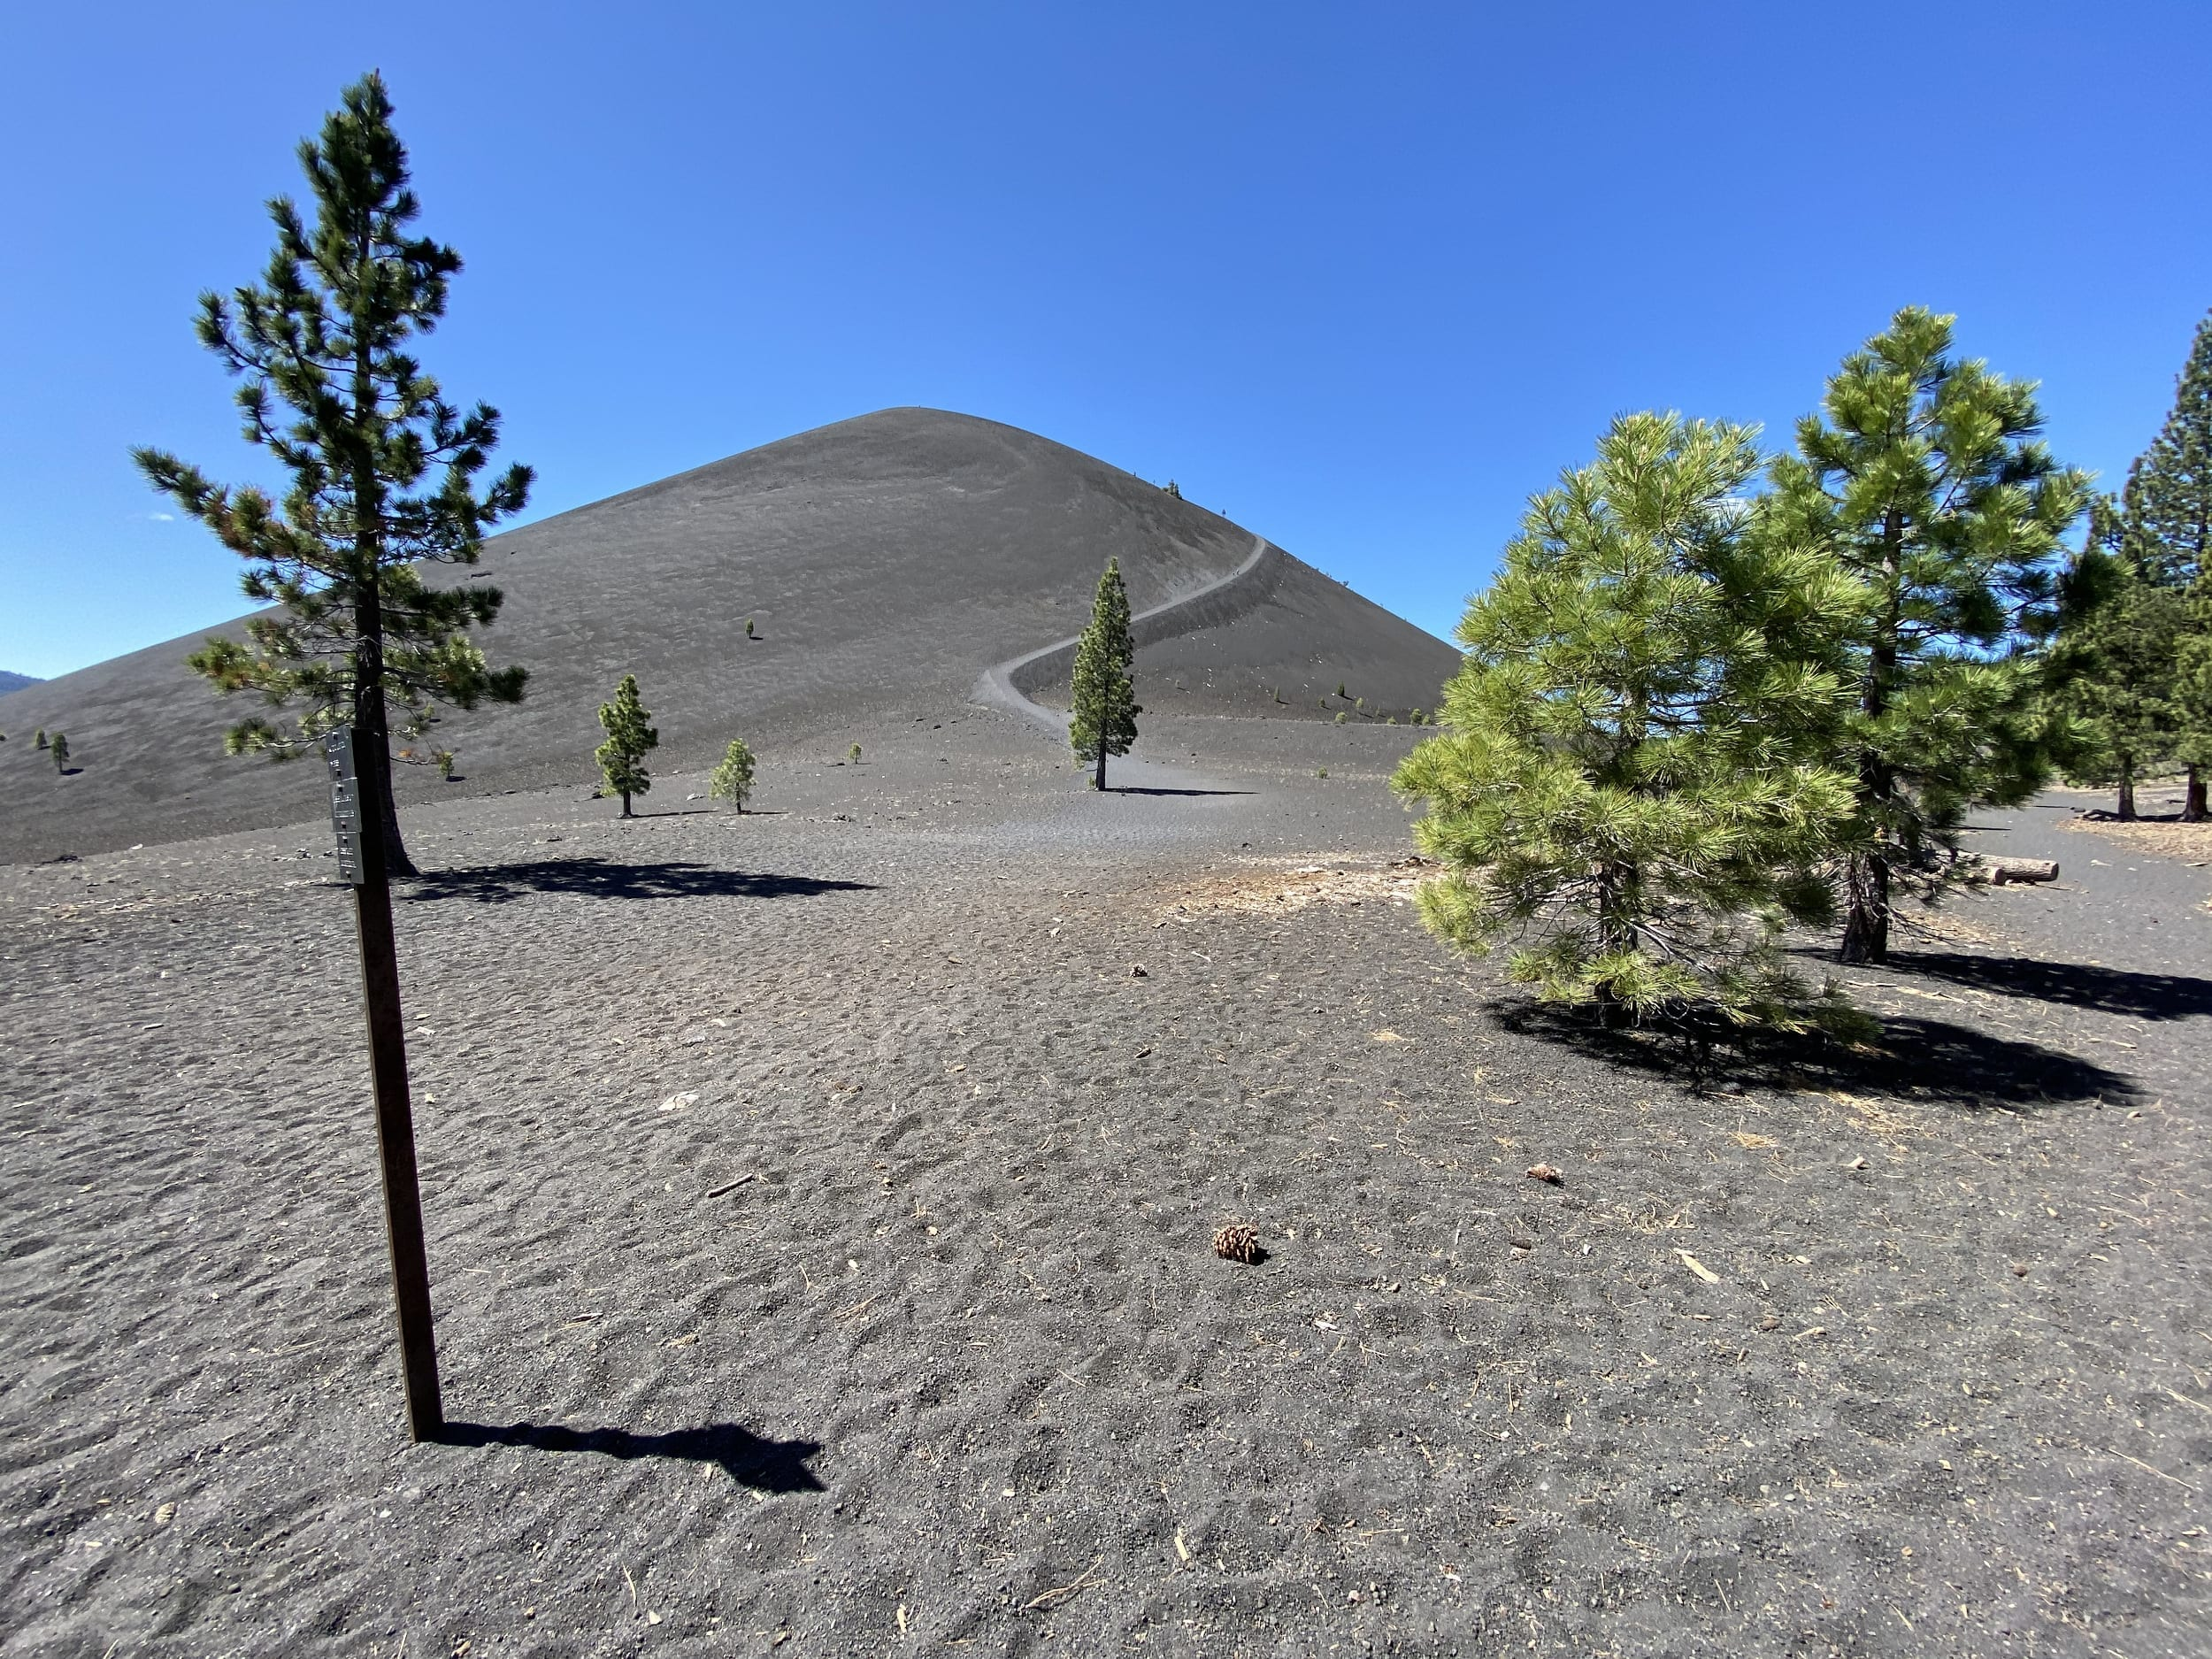 Hiking Cinder Cone with Kids at Lassen Volcanic National Park  (Day 2 of 3)